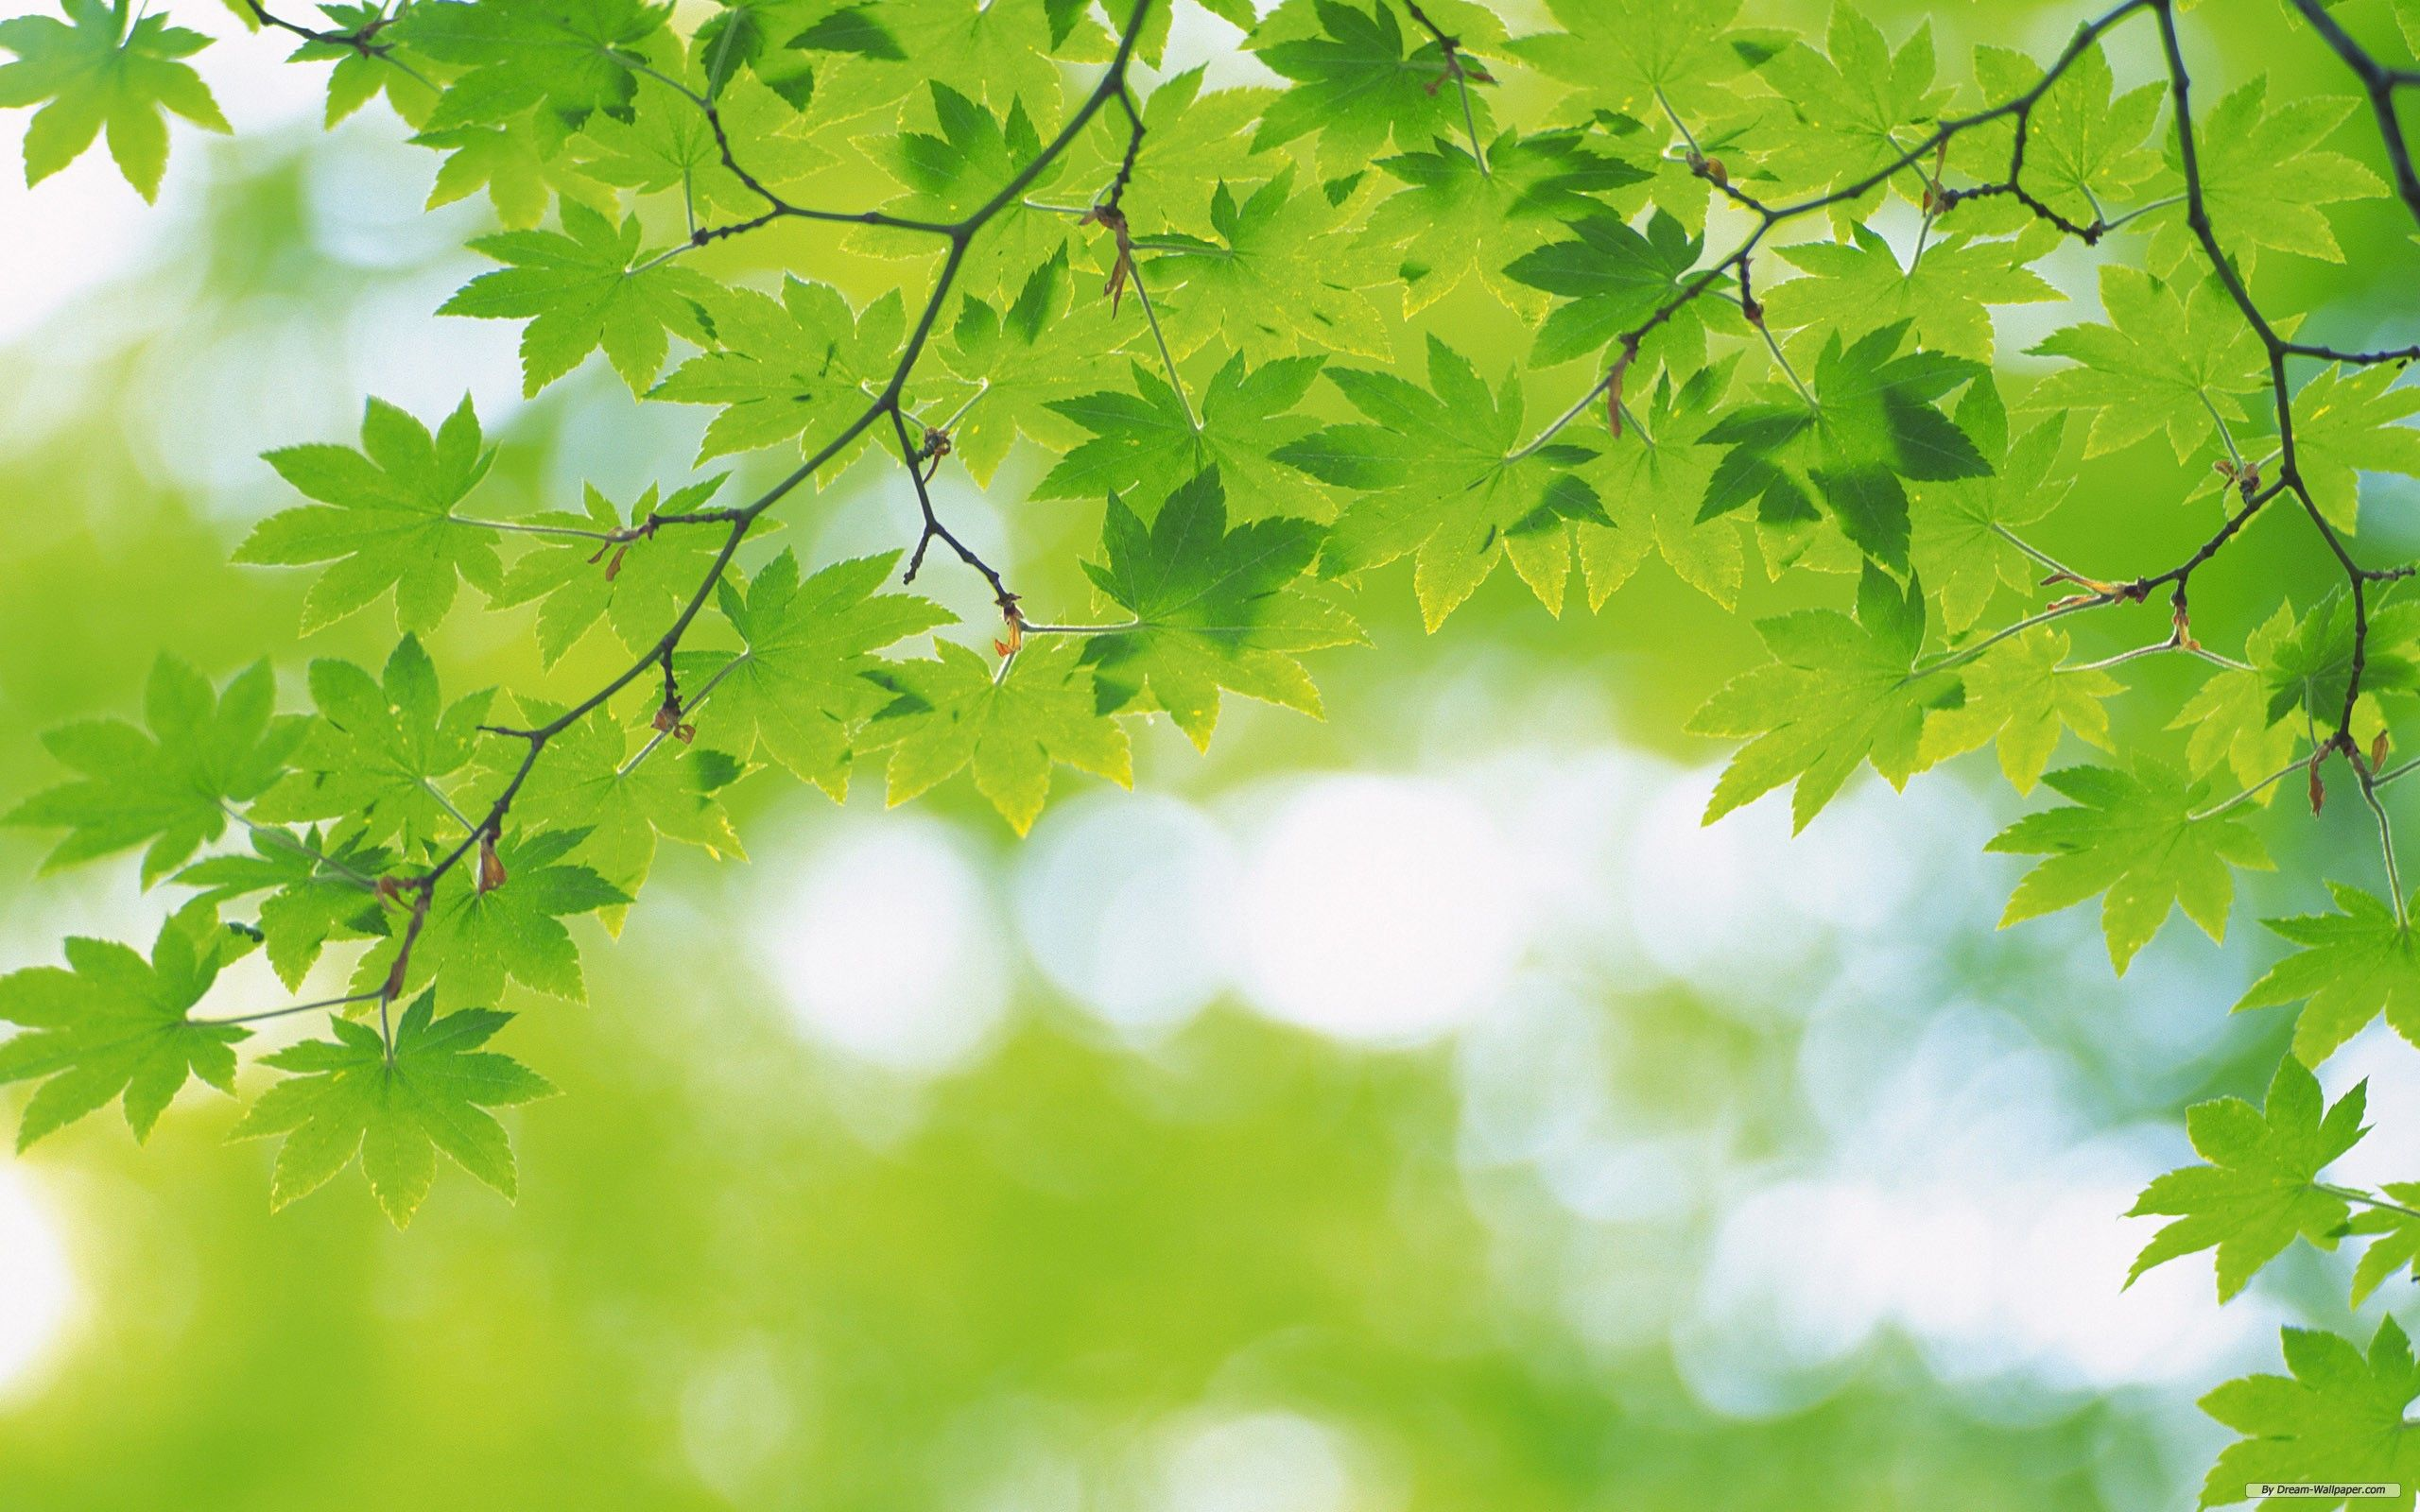 Nature Background And Images Collections - Picsy Buzz | Fonts ...